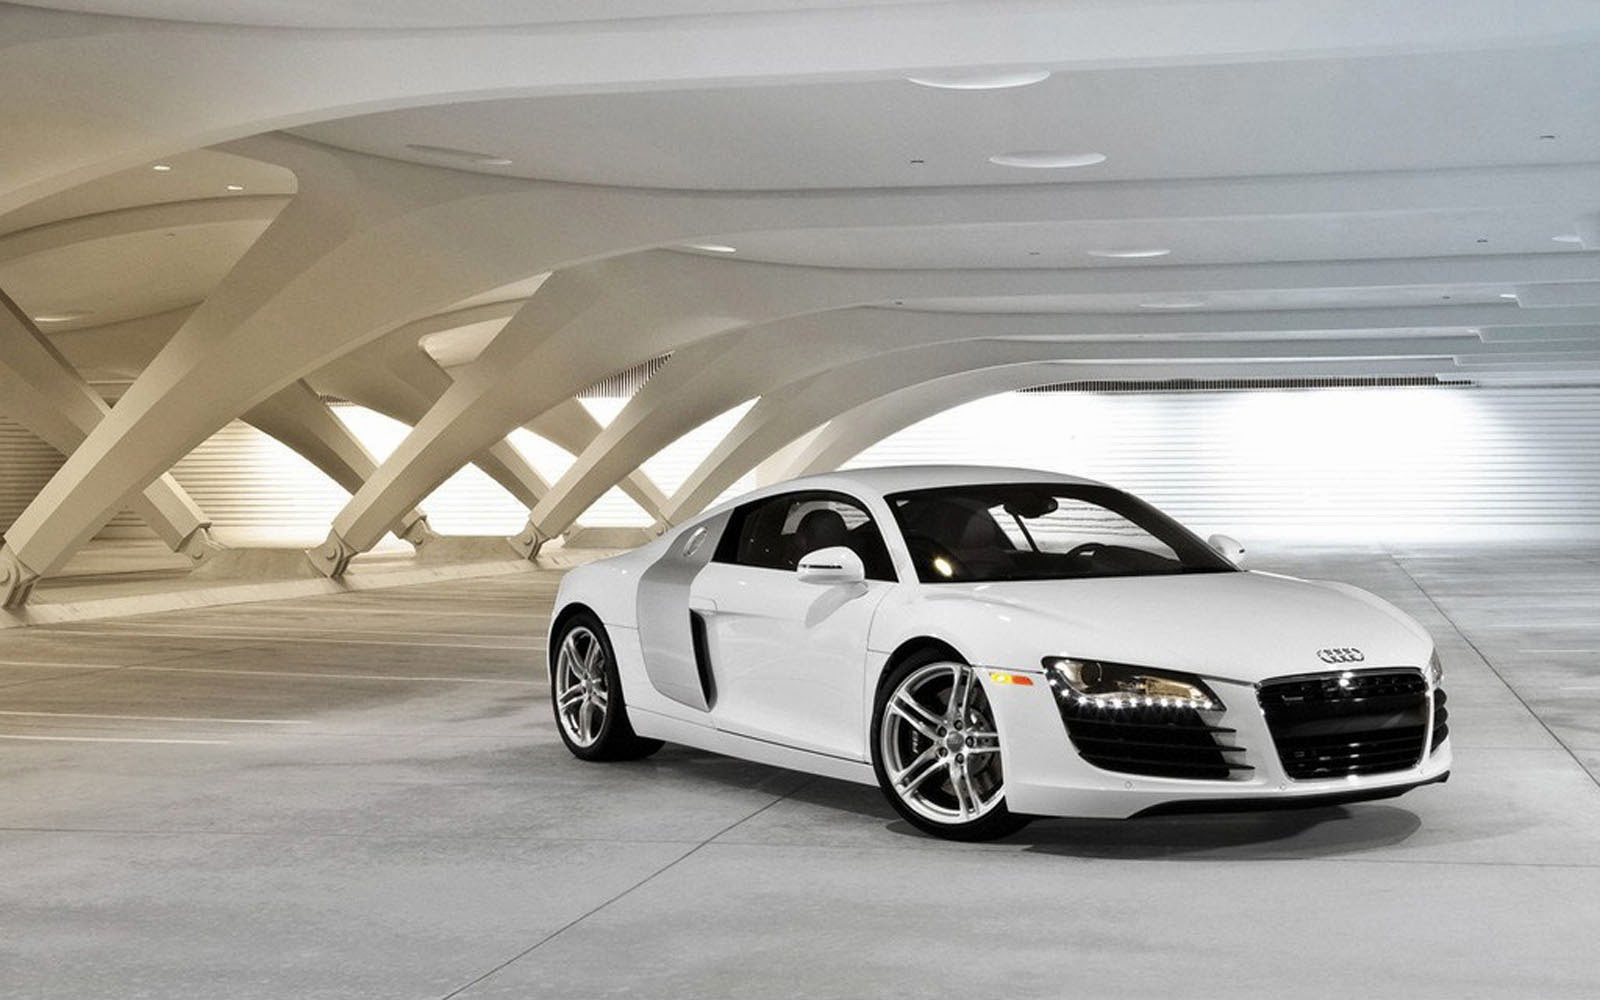 wallpapers audi r8 wallpapers. Black Bedroom Furniture Sets. Home Design Ideas